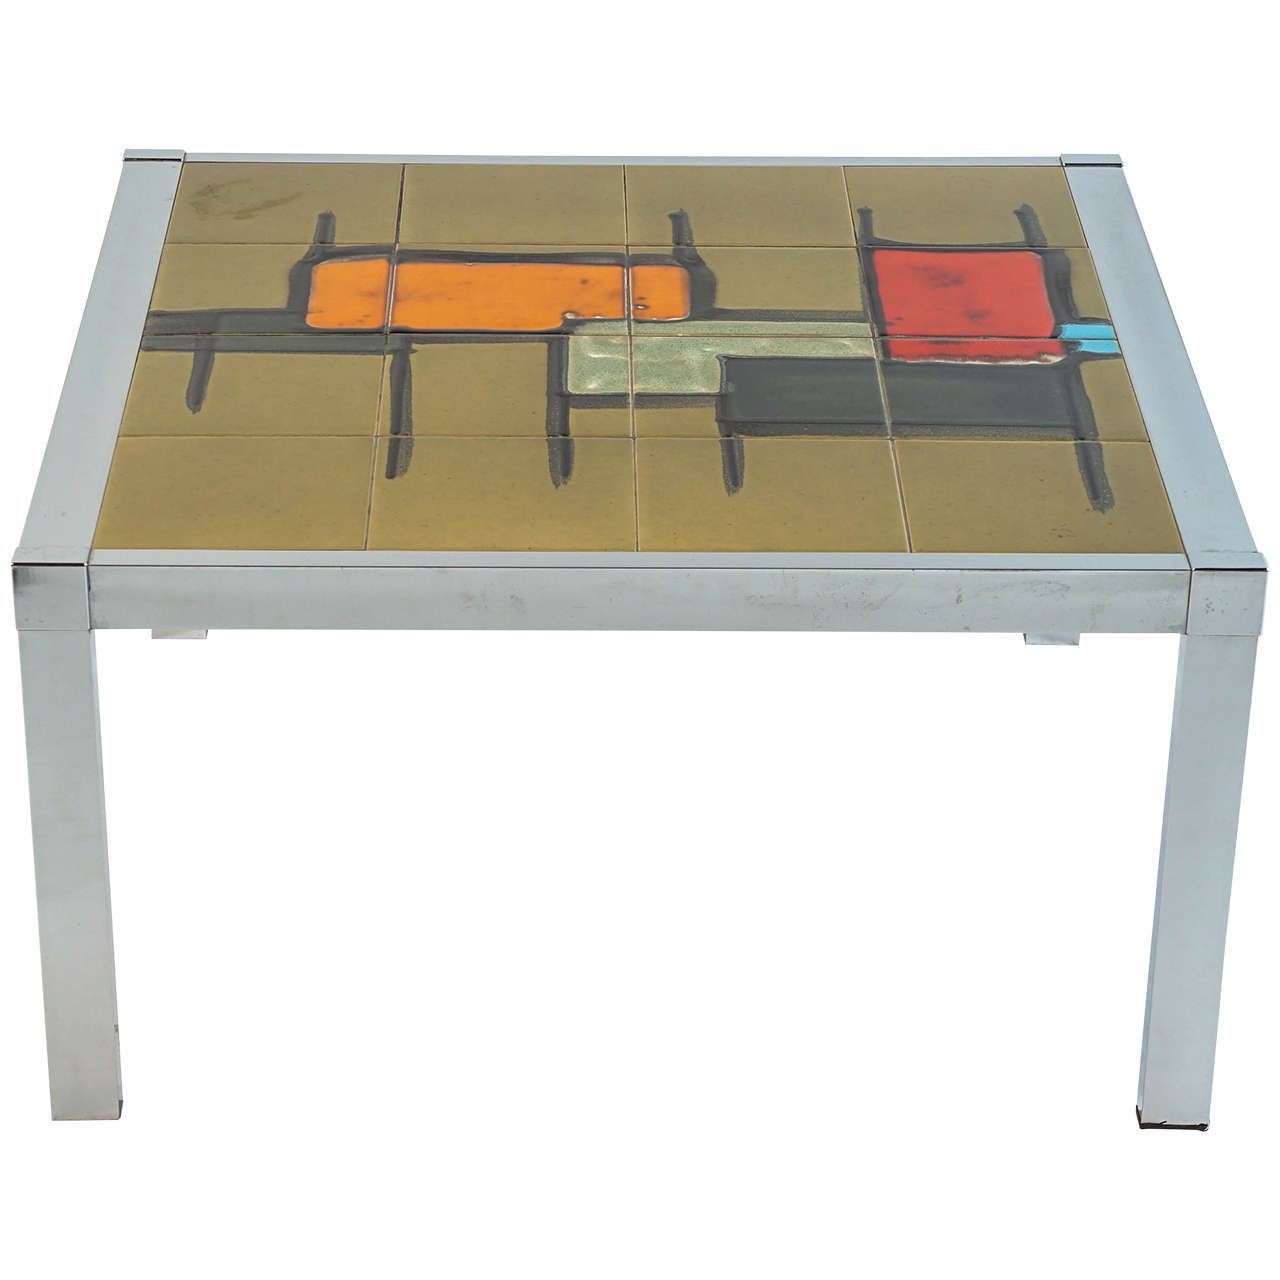 French Tile-Top Cocktail or End Table with an Abstract Design